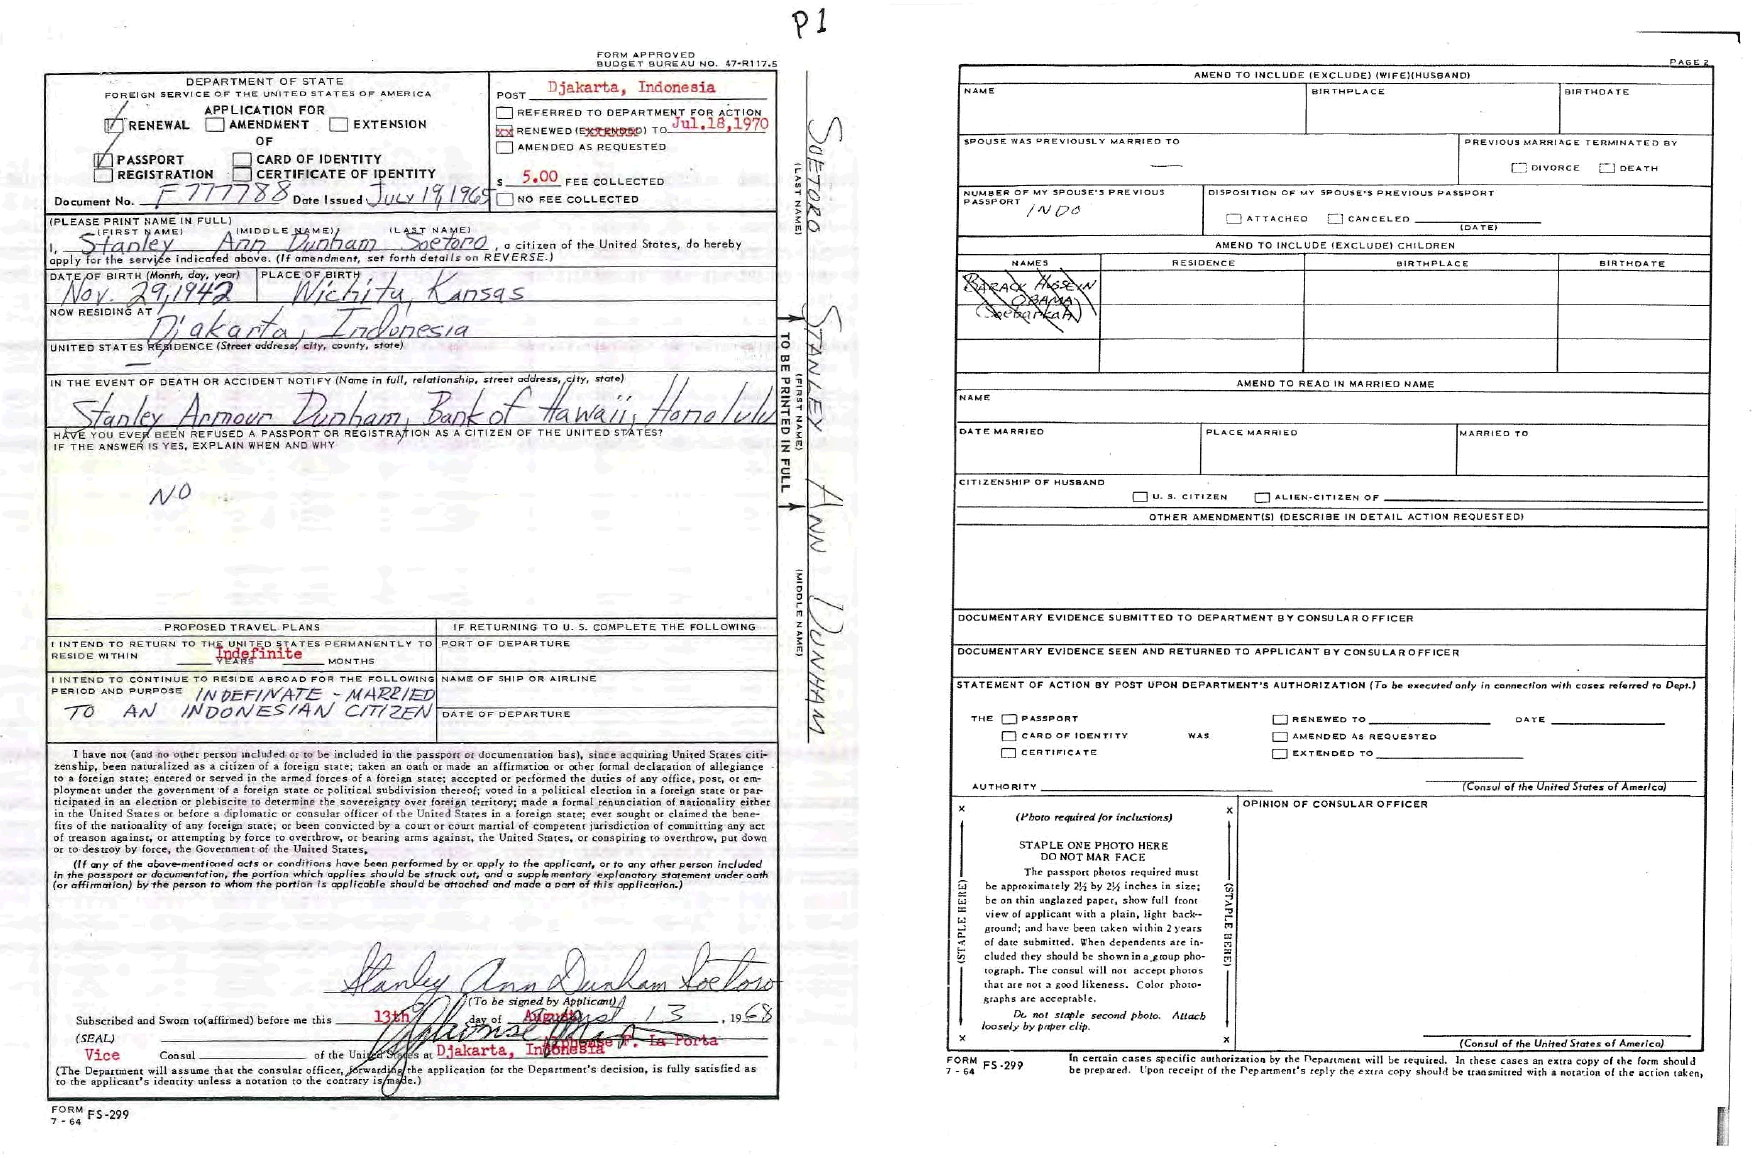 Stanley Ann Dunham Soetorou0027s 1968 Application To Renew Her U.S. Passport.  Dunham Was Preparing To  Barack Obama Resume